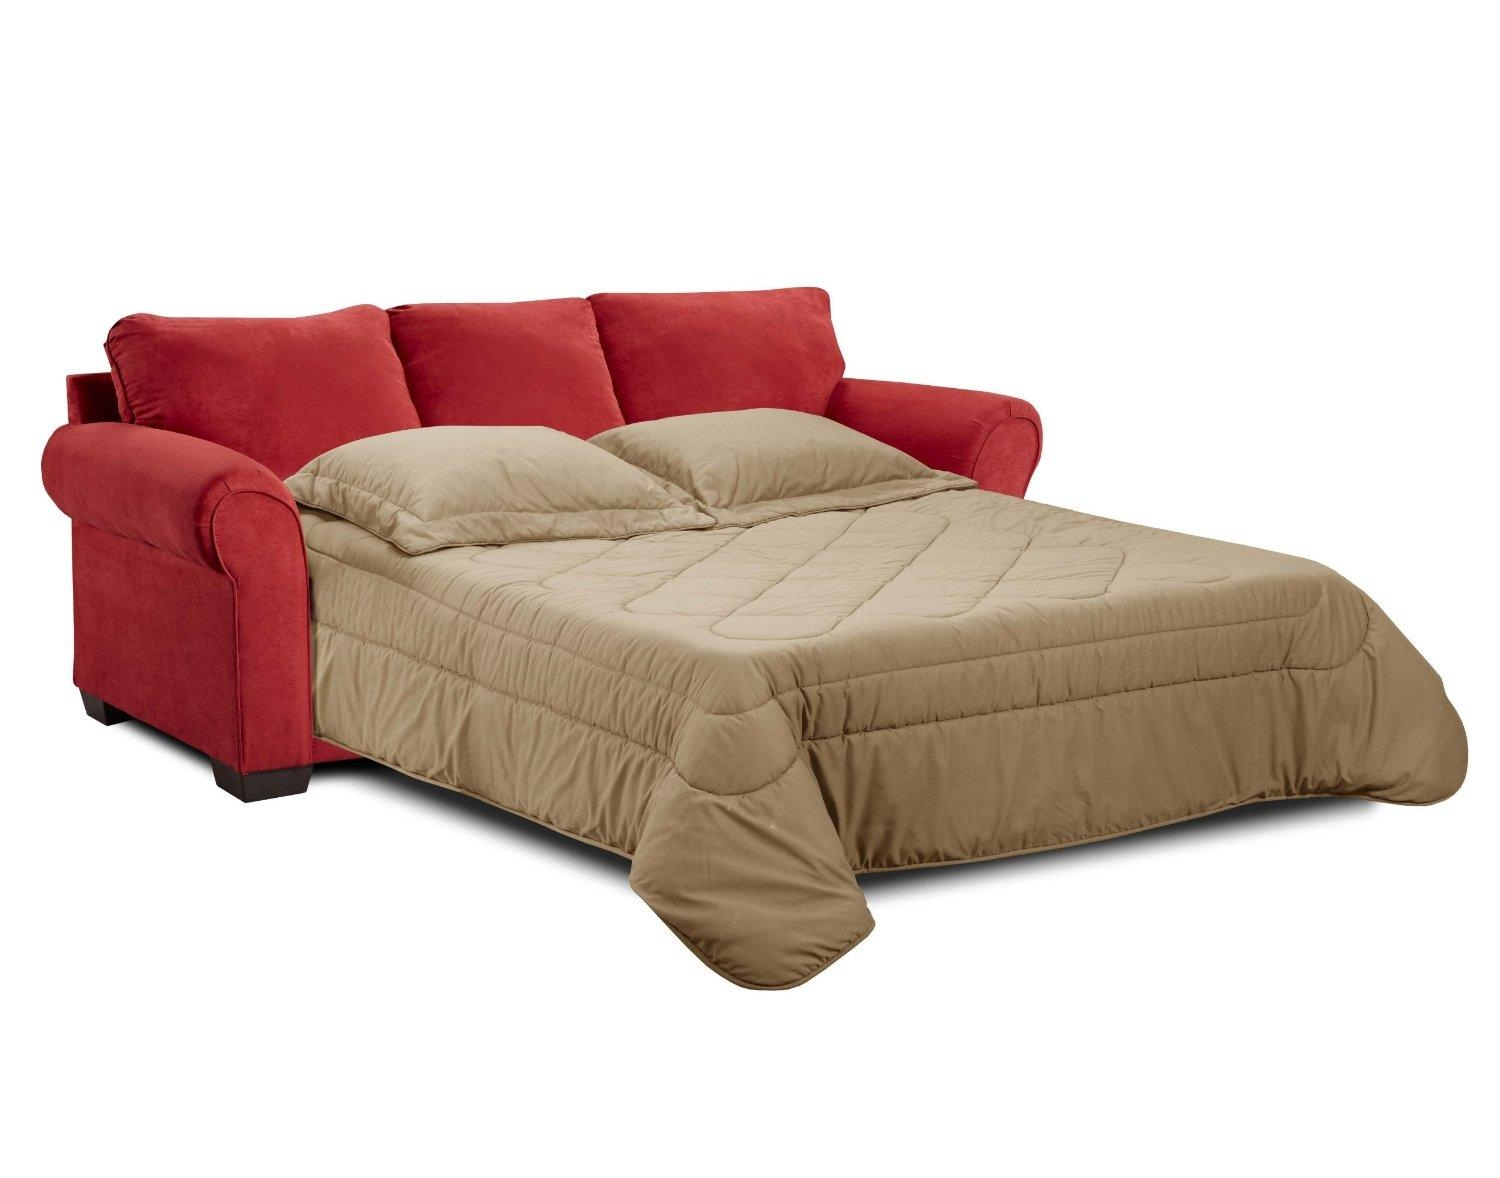 Sofas Center : Sears Sleeper Sofa Mattress Replacement Sheets For Sofa Beds Sheets (Image 15 of 20)